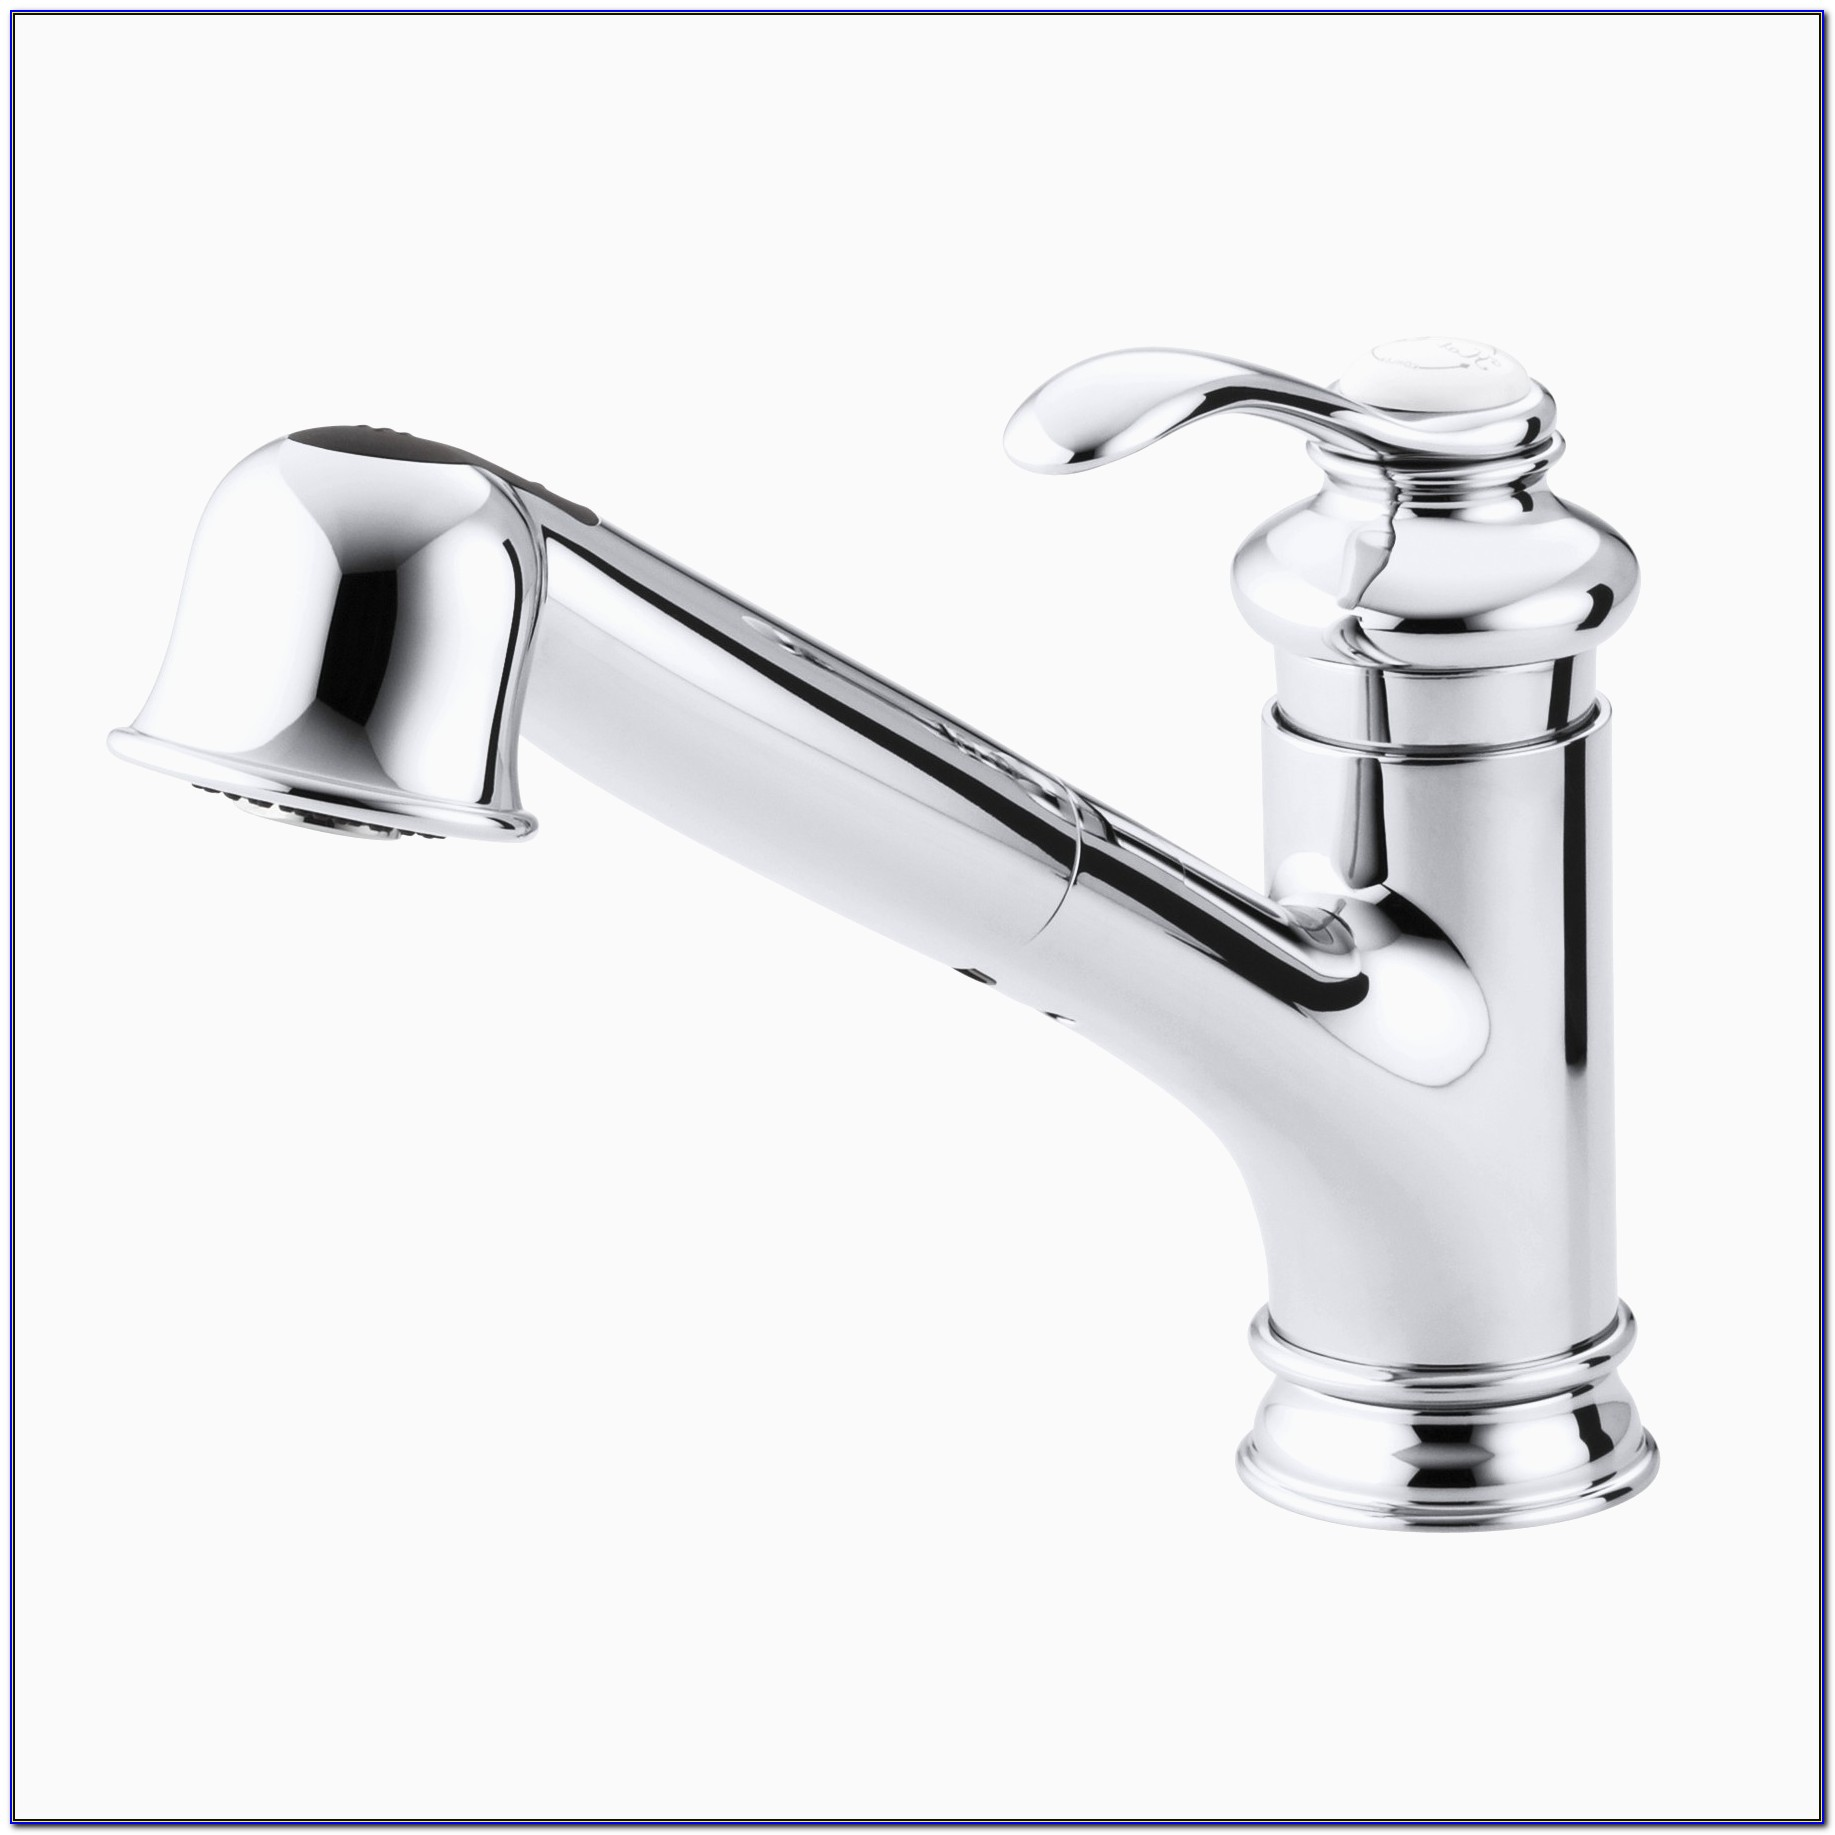 Vintage Bathroom Faucets New American Standard Kitchen Faucets Parts Awesome Wallpaper Kitchen